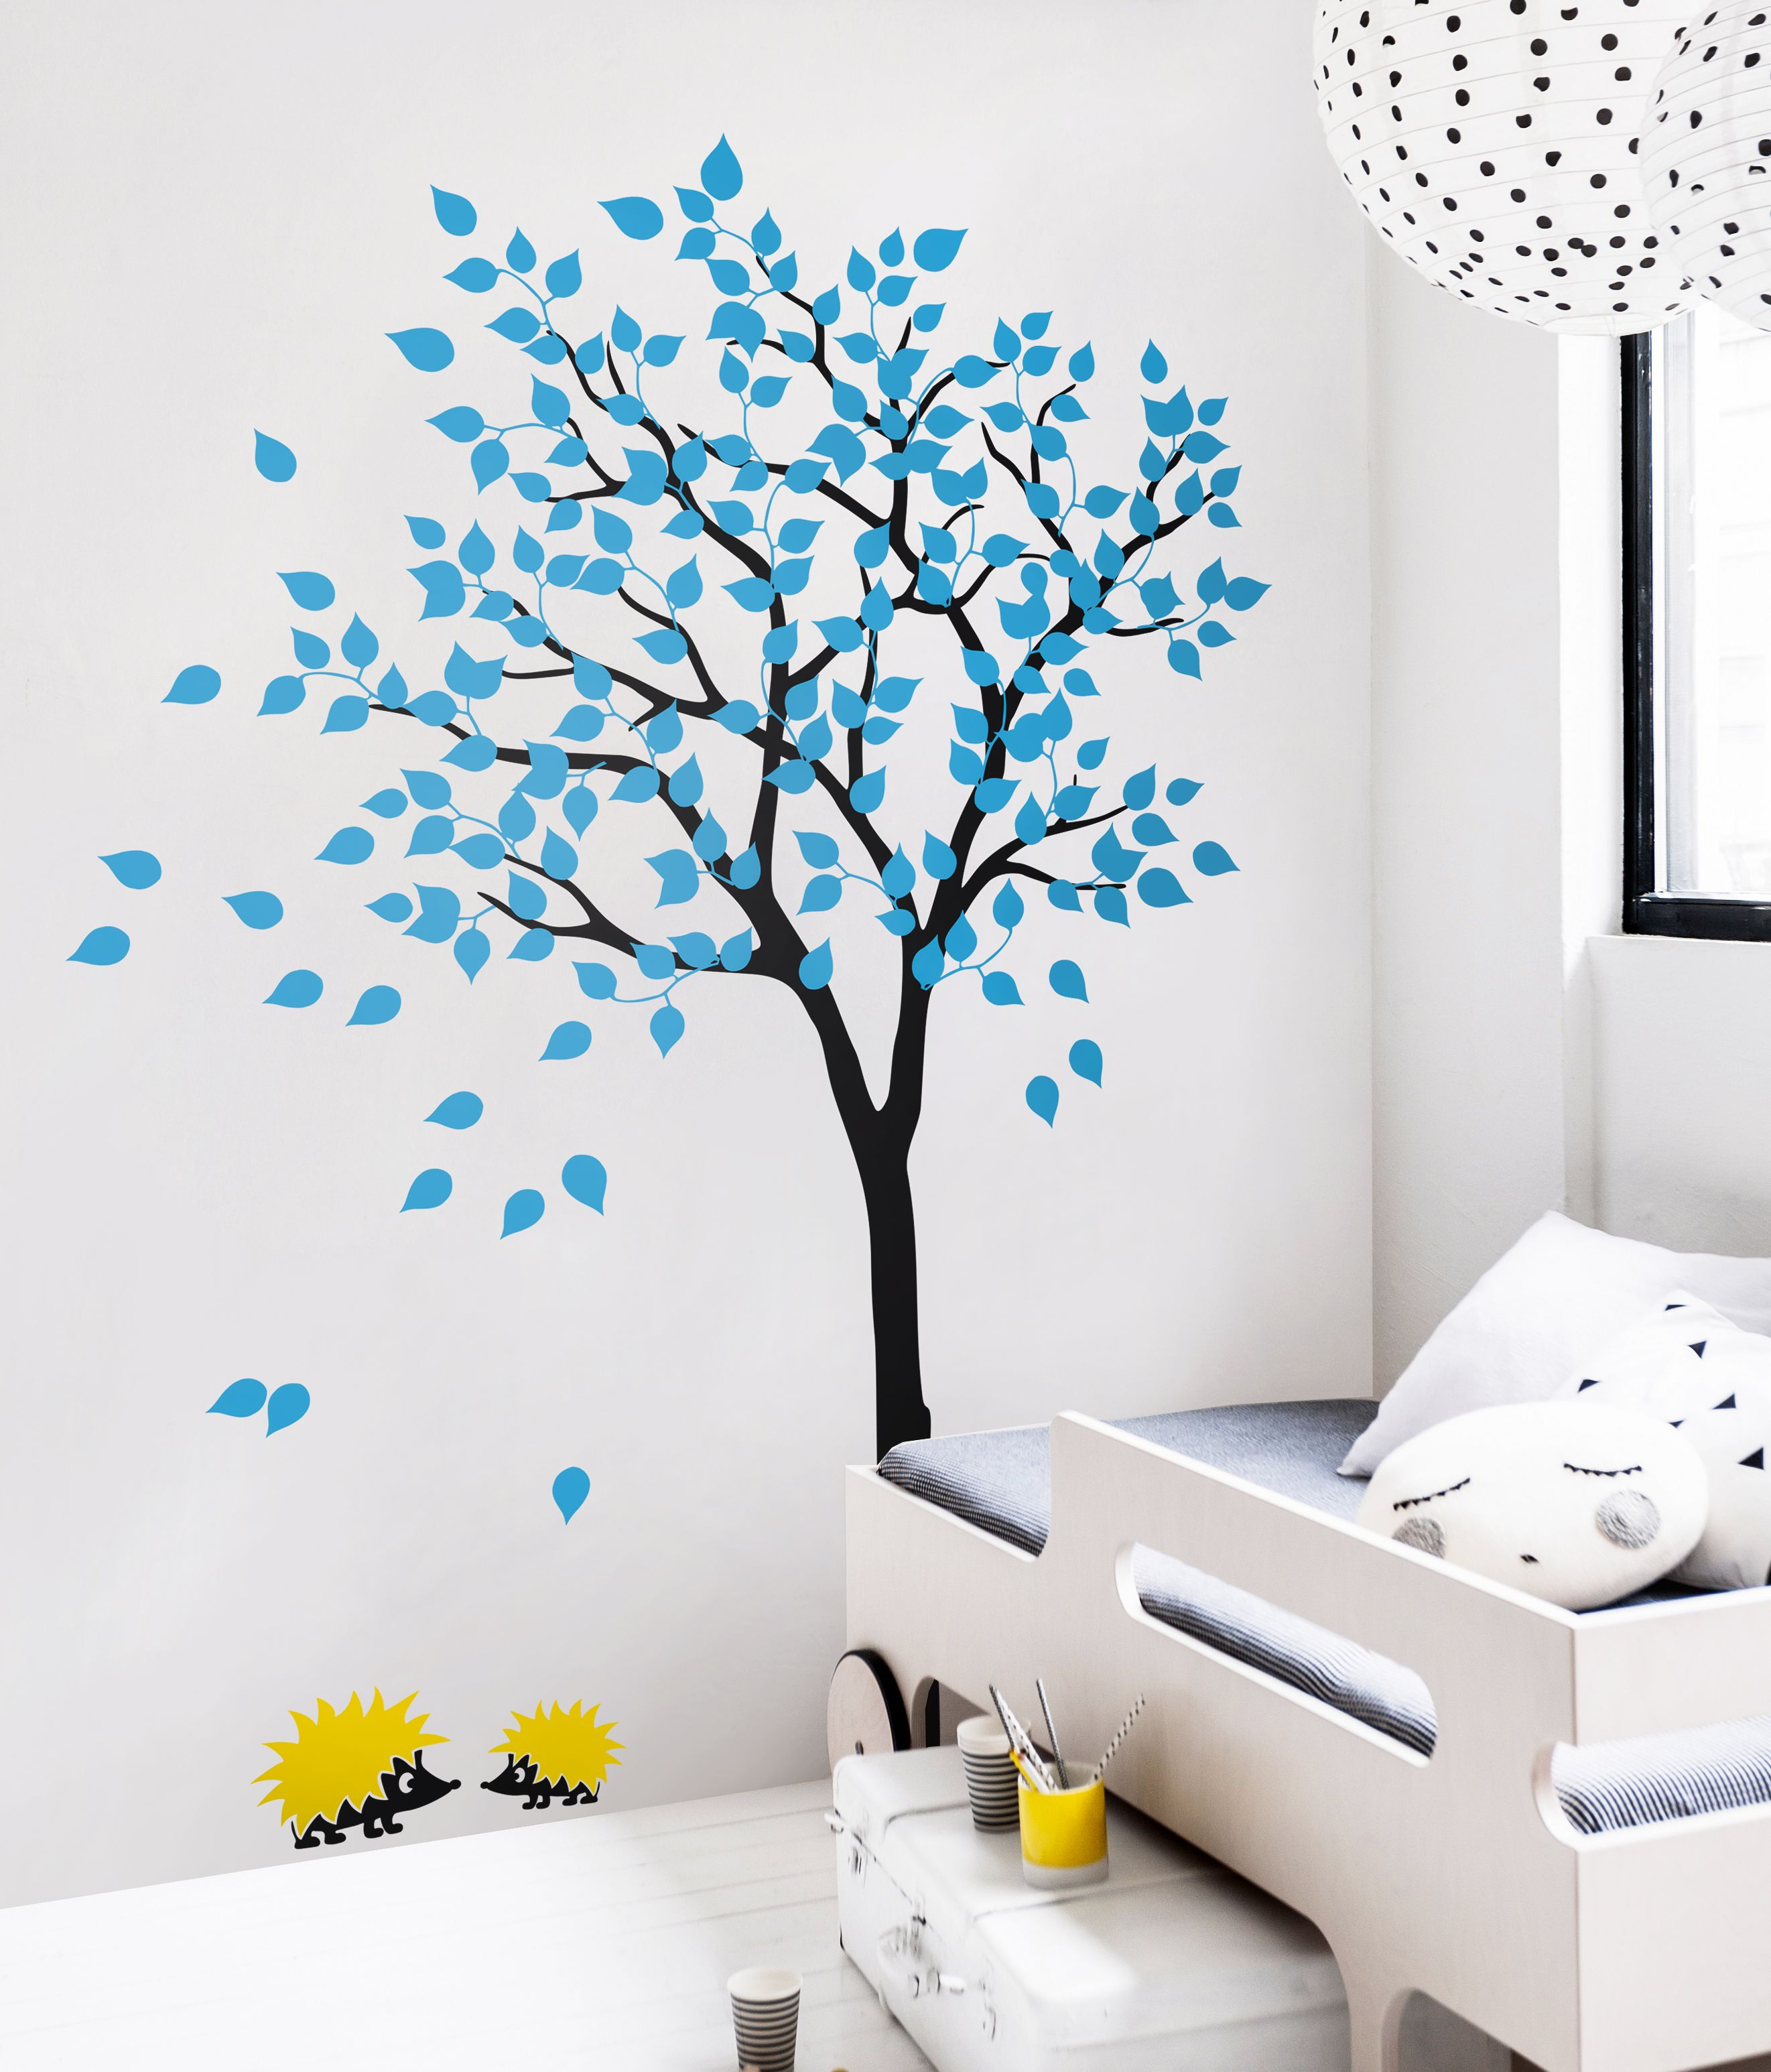 Pin By Leatha Talmage On Bedroom Decor Creative Wall Painting